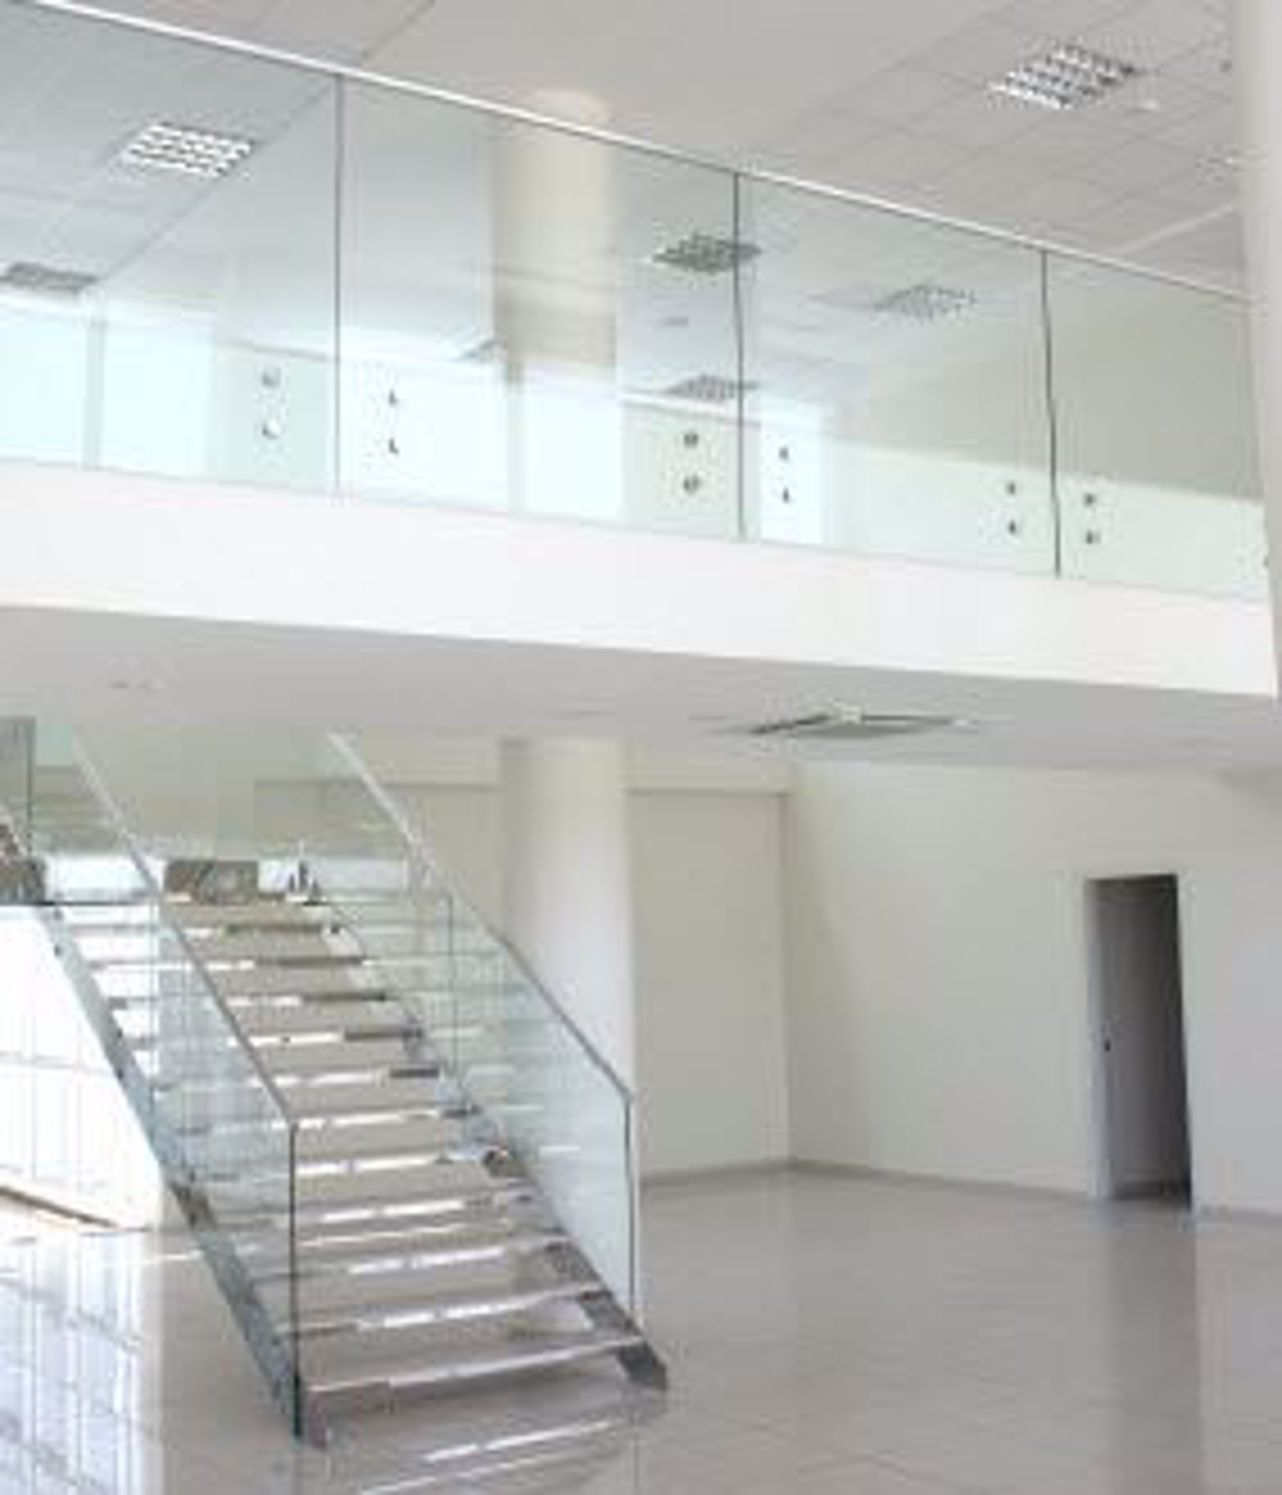 How to Design a Modern Reception Area for Today's Contemporary Office Space